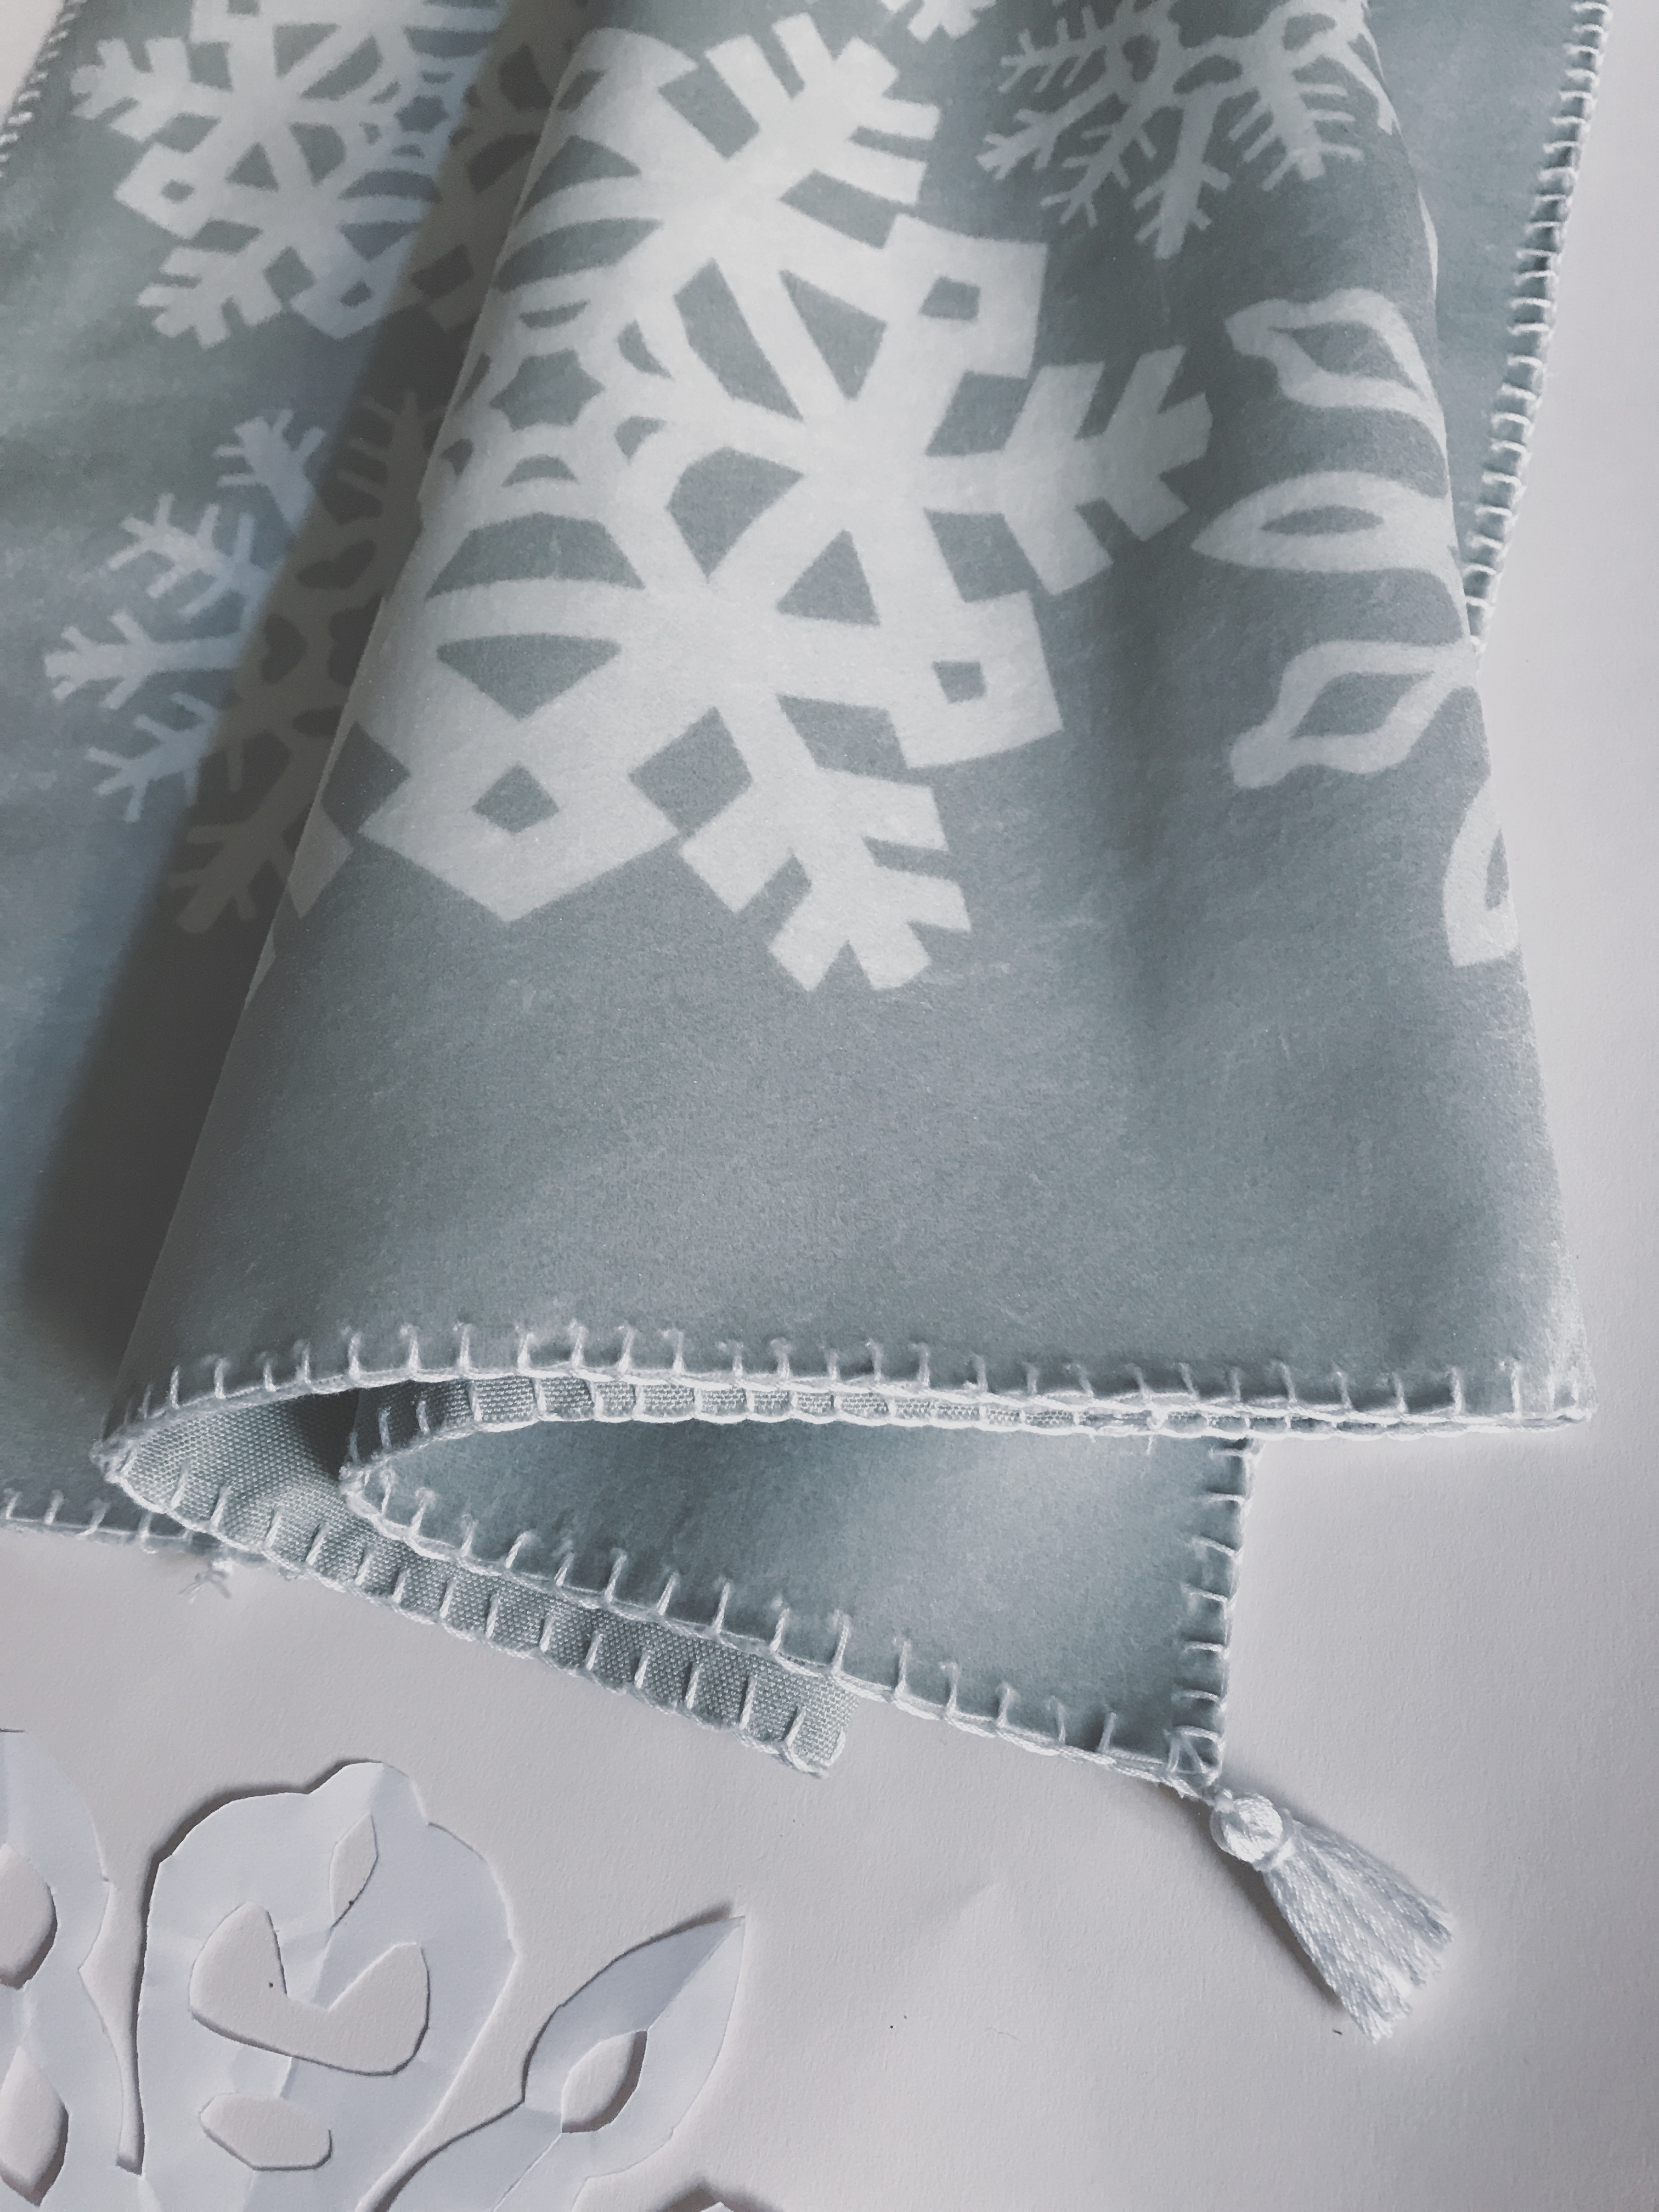 Making Spirits Bright: DIY Paper Snowflake Table Runner | Spoonflower Blog